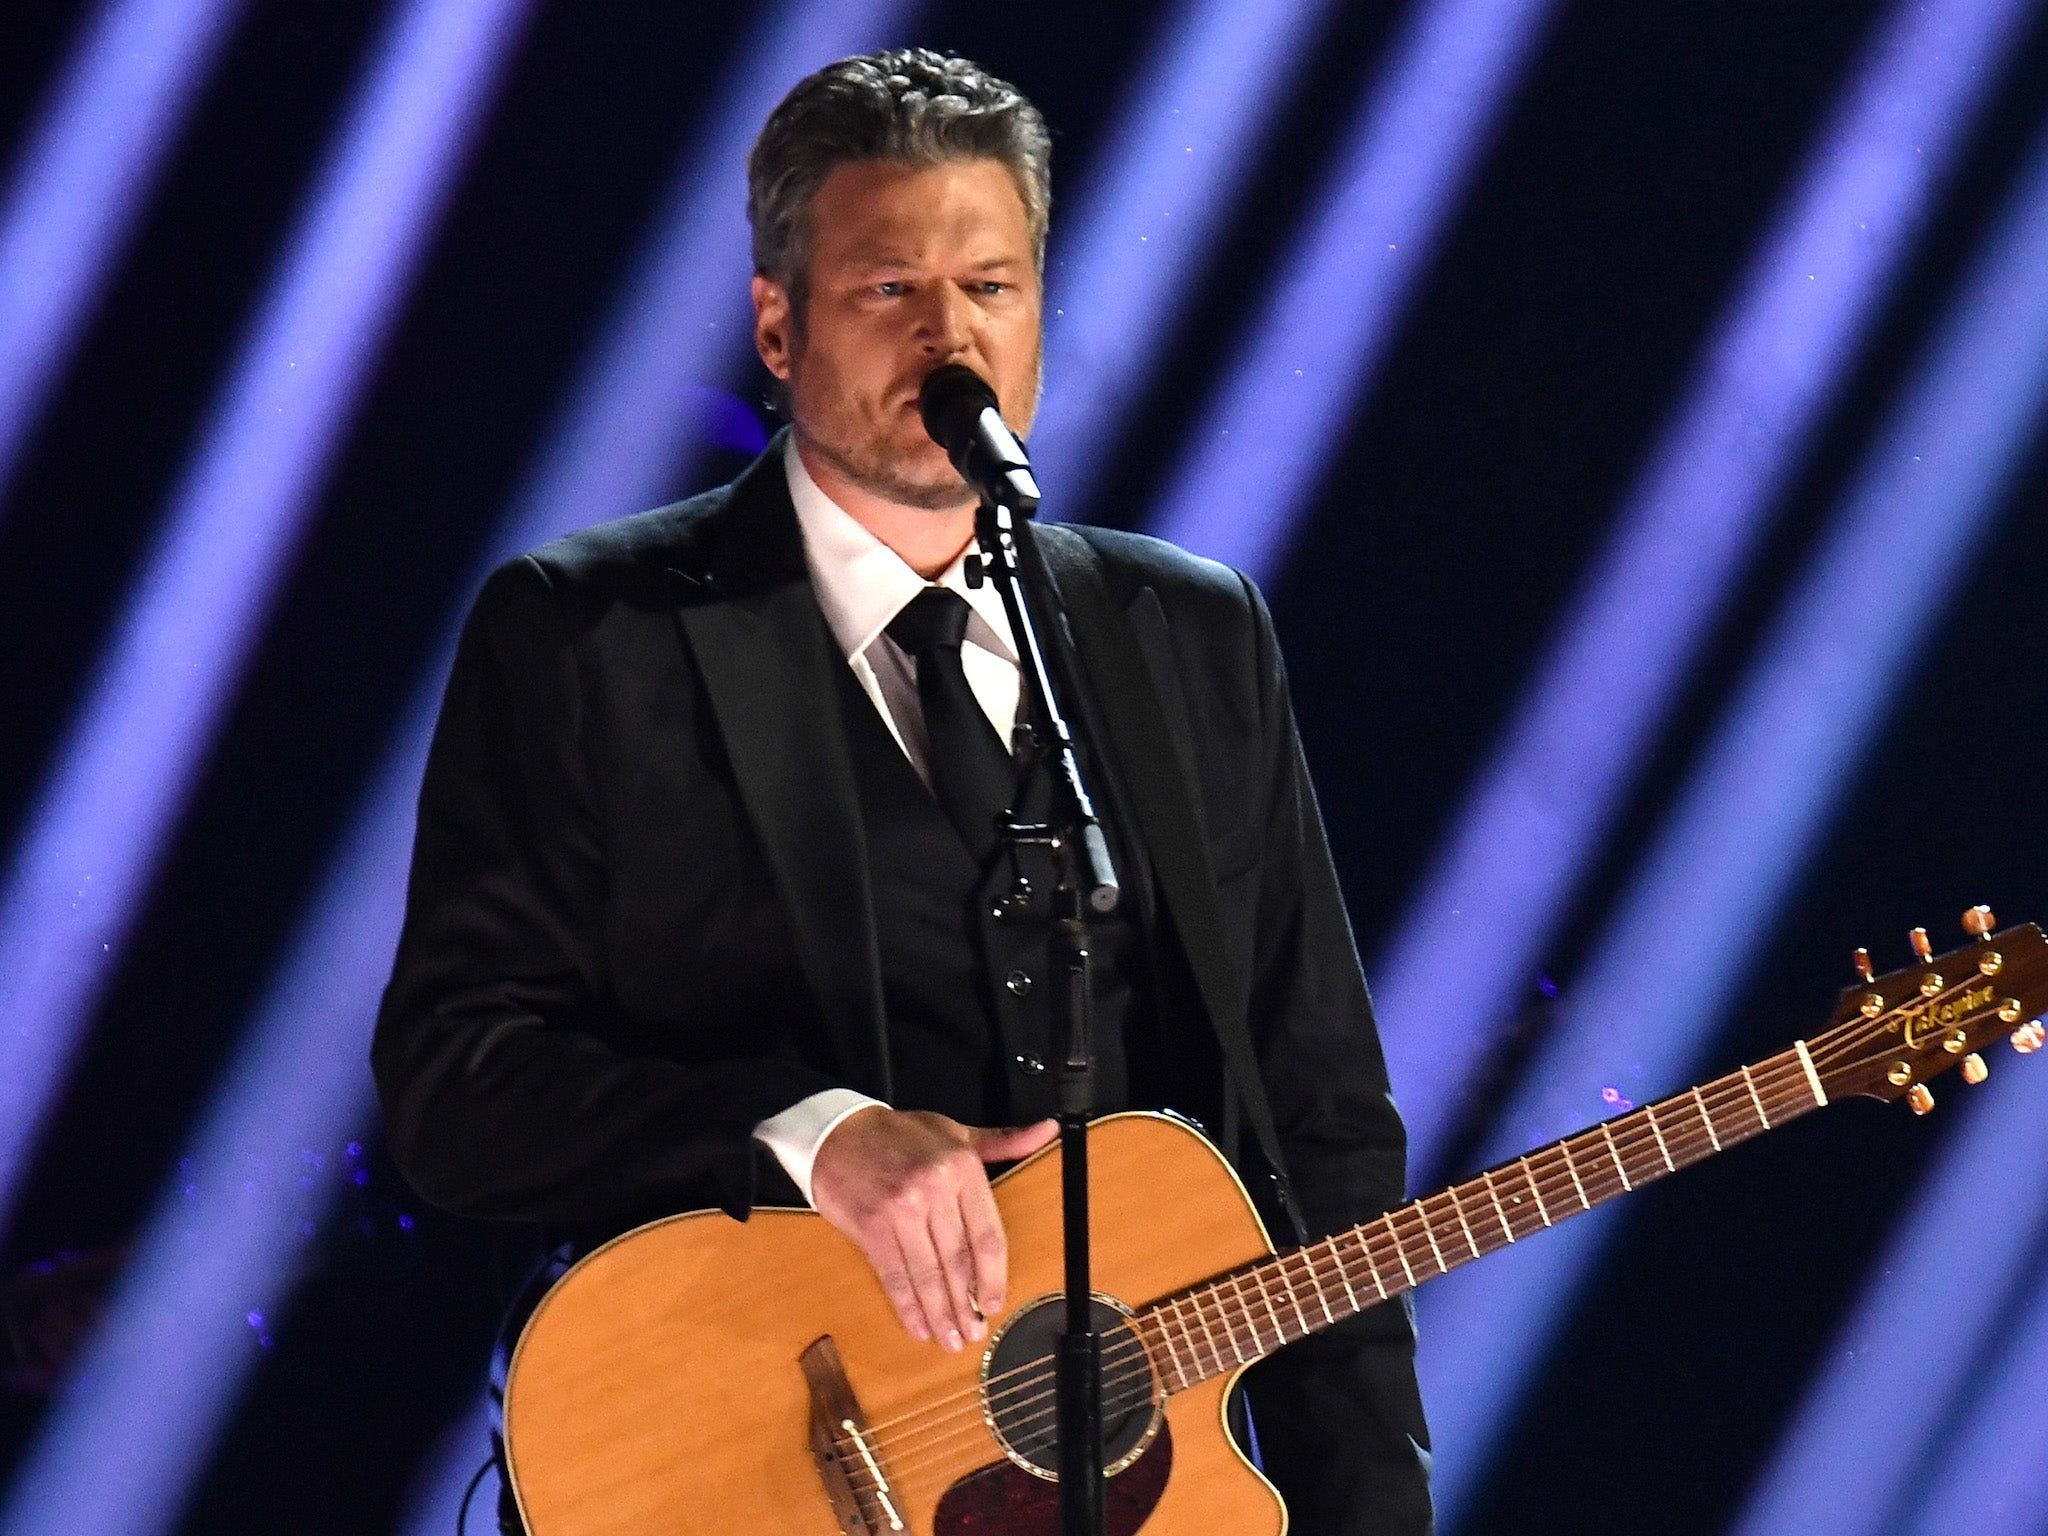 Country music star Blake Shelton faces backlash for 'romanticising minimum wage' in 'tone-deaf' new song